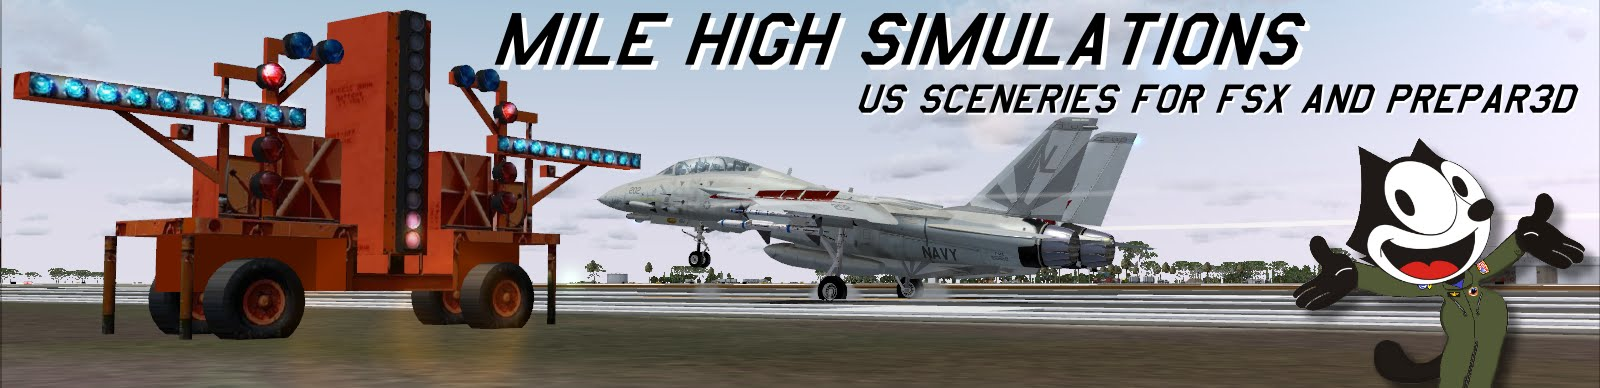 Mile High Simulations